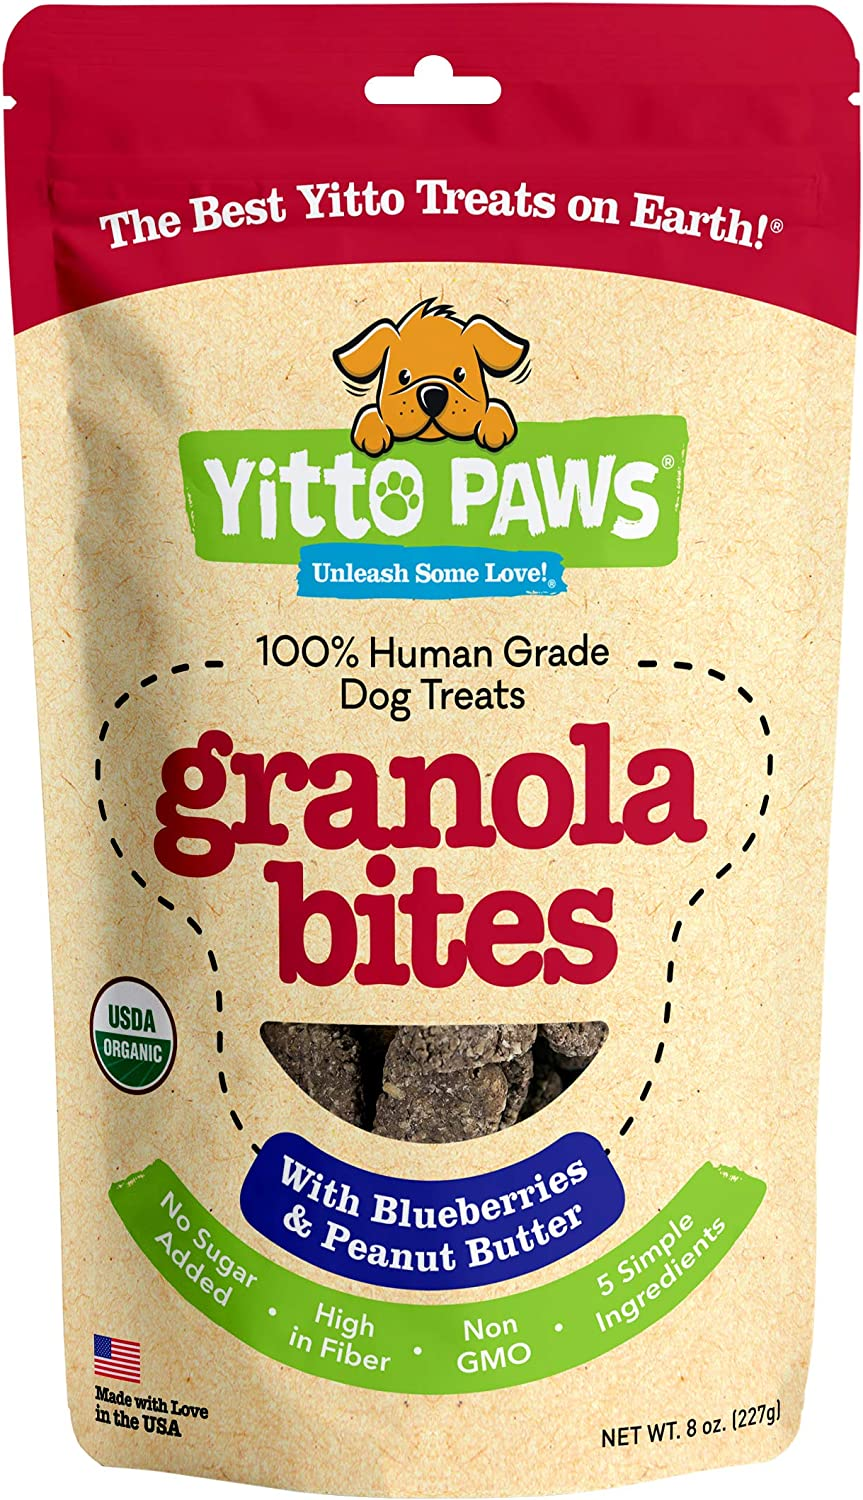 Yitto Paws dog granola bites